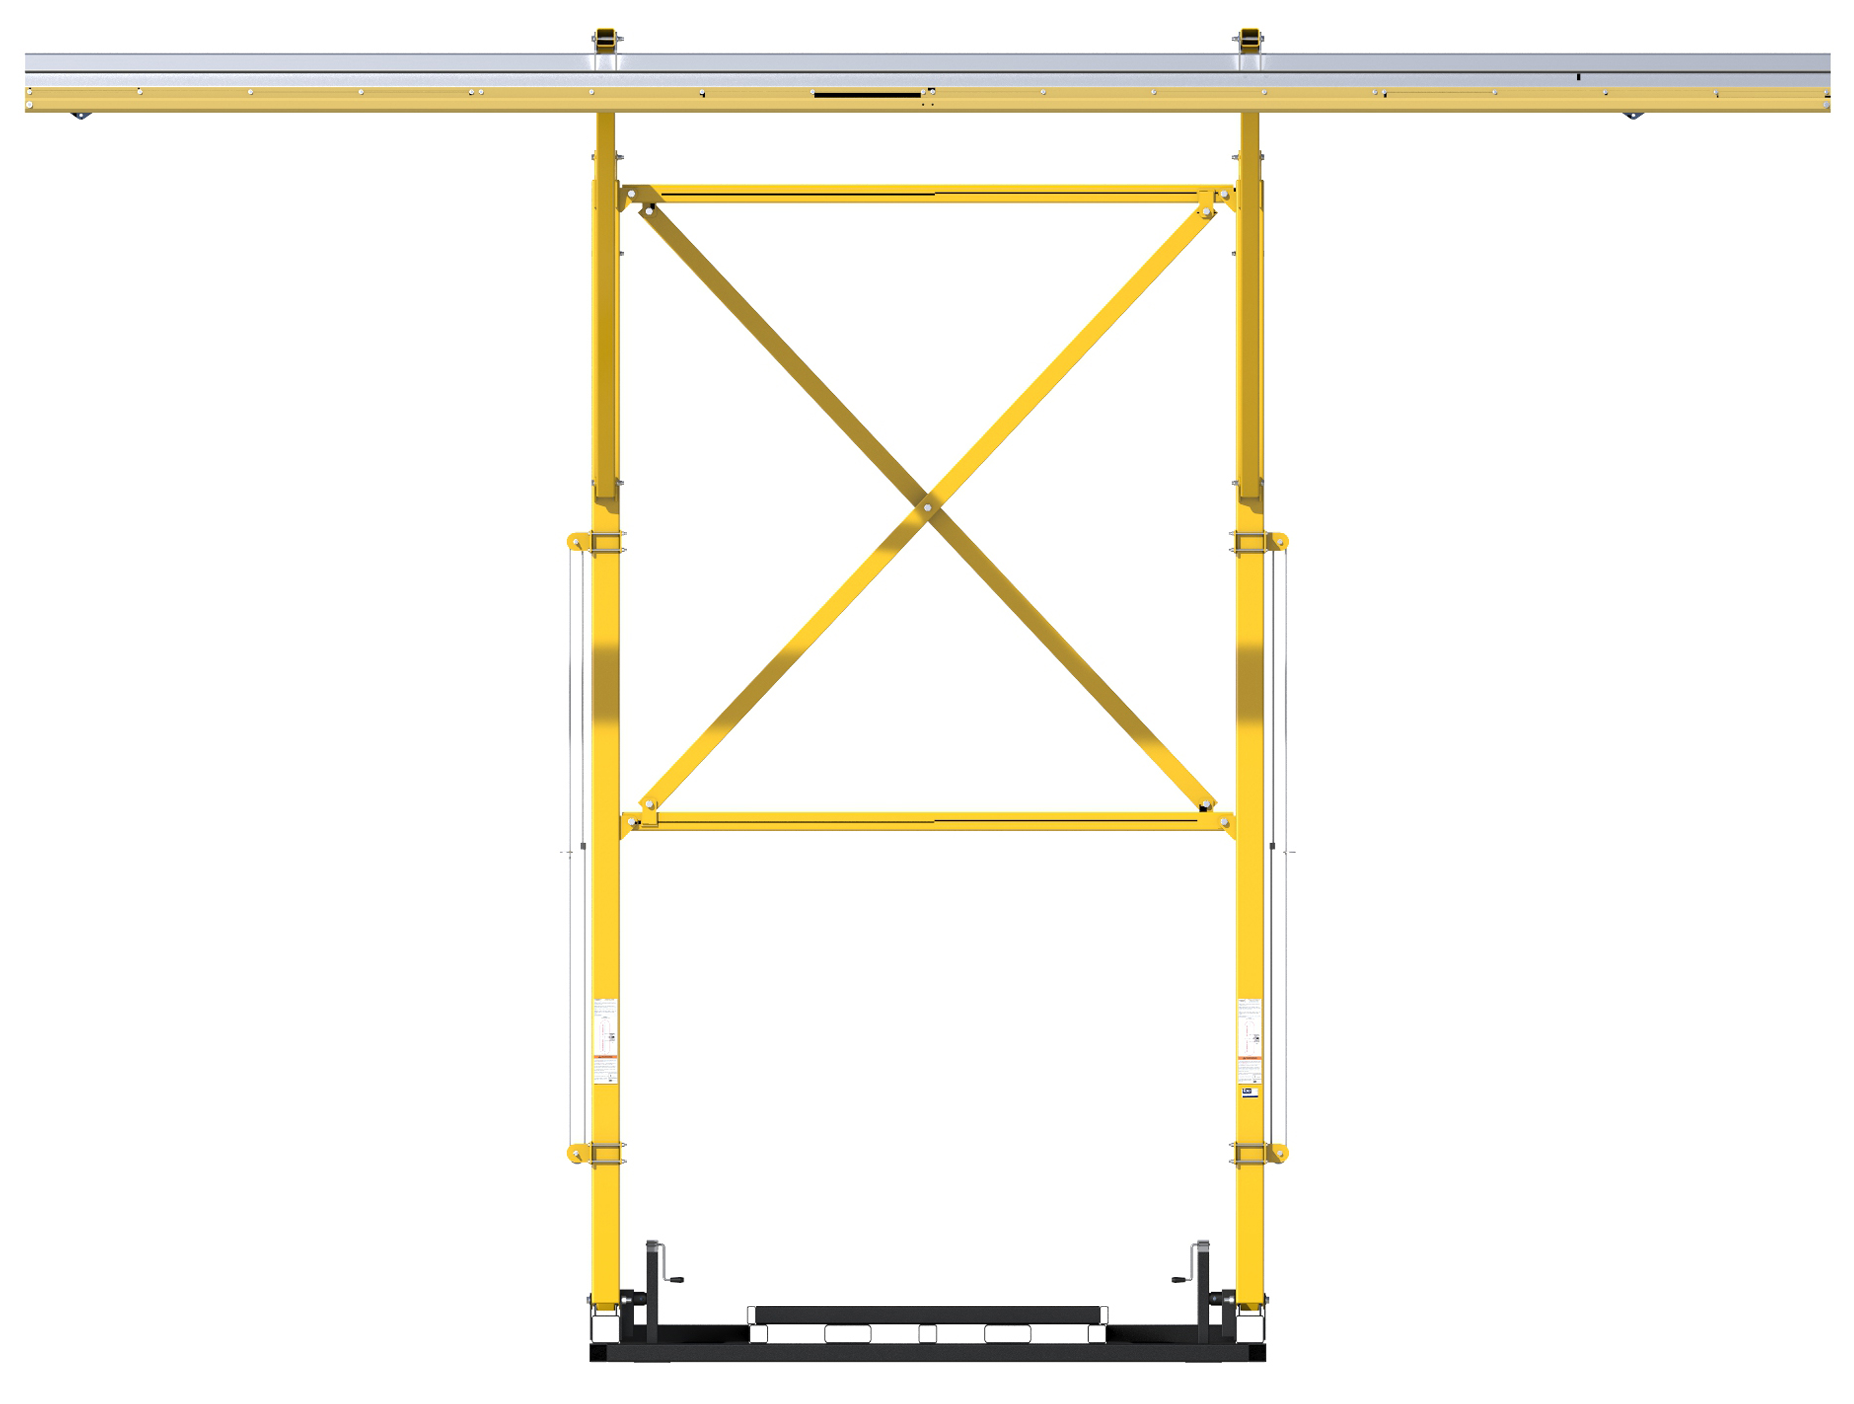 FlexiGuard Counterweighted Overhead Rail Fall Arrest System,  No Counterweights, Front View